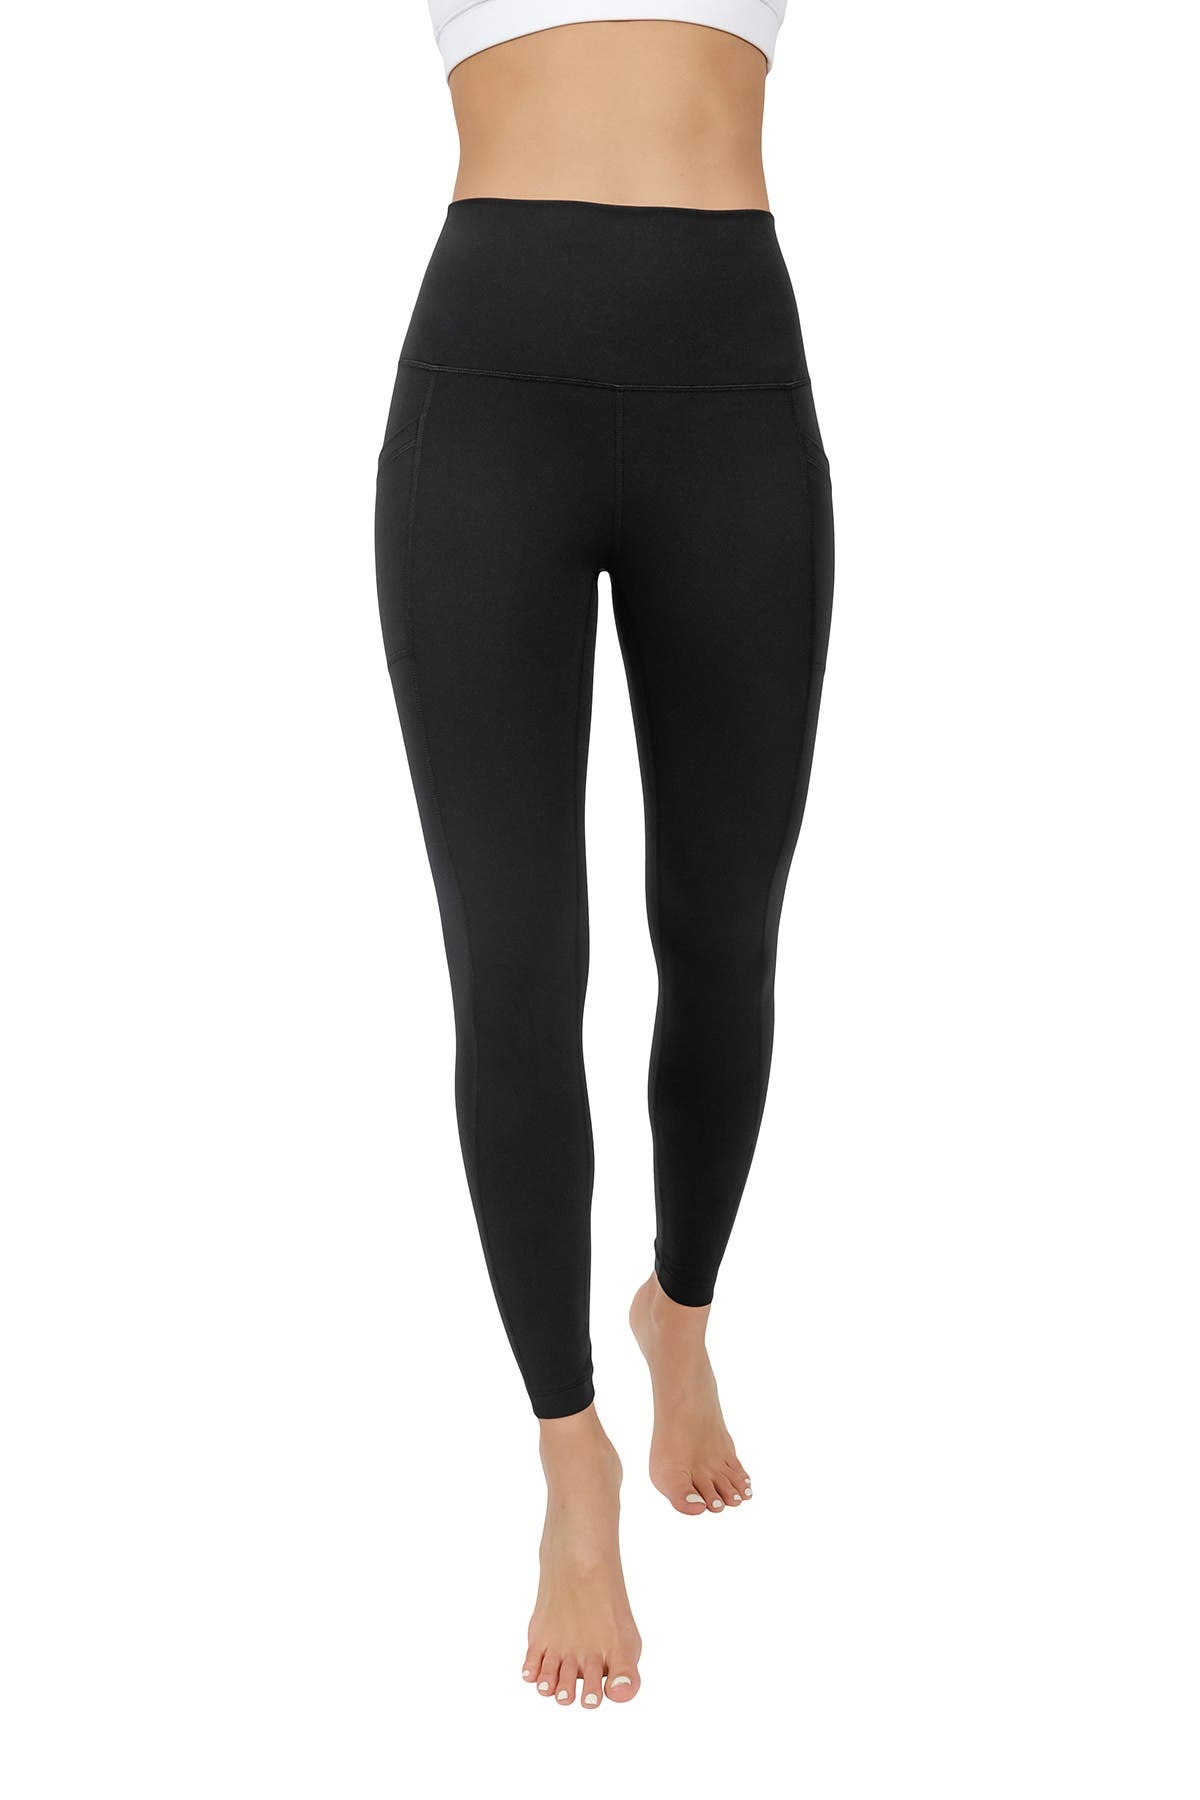 Image of 90 Degree By Reflex Superflex High Rise Elastic Free Pocket Ankle Leggings